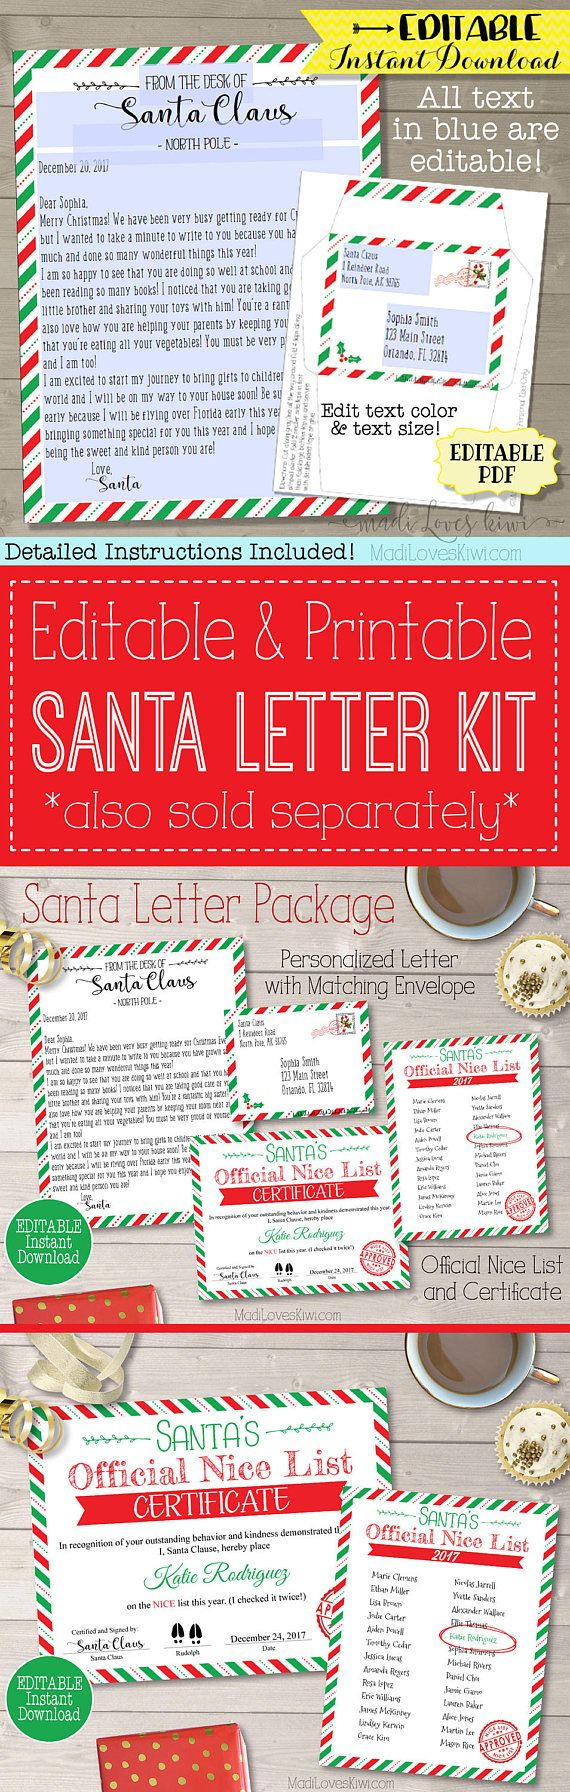 Personalized Santa Letter Kit Custom Letter From Santa Santa